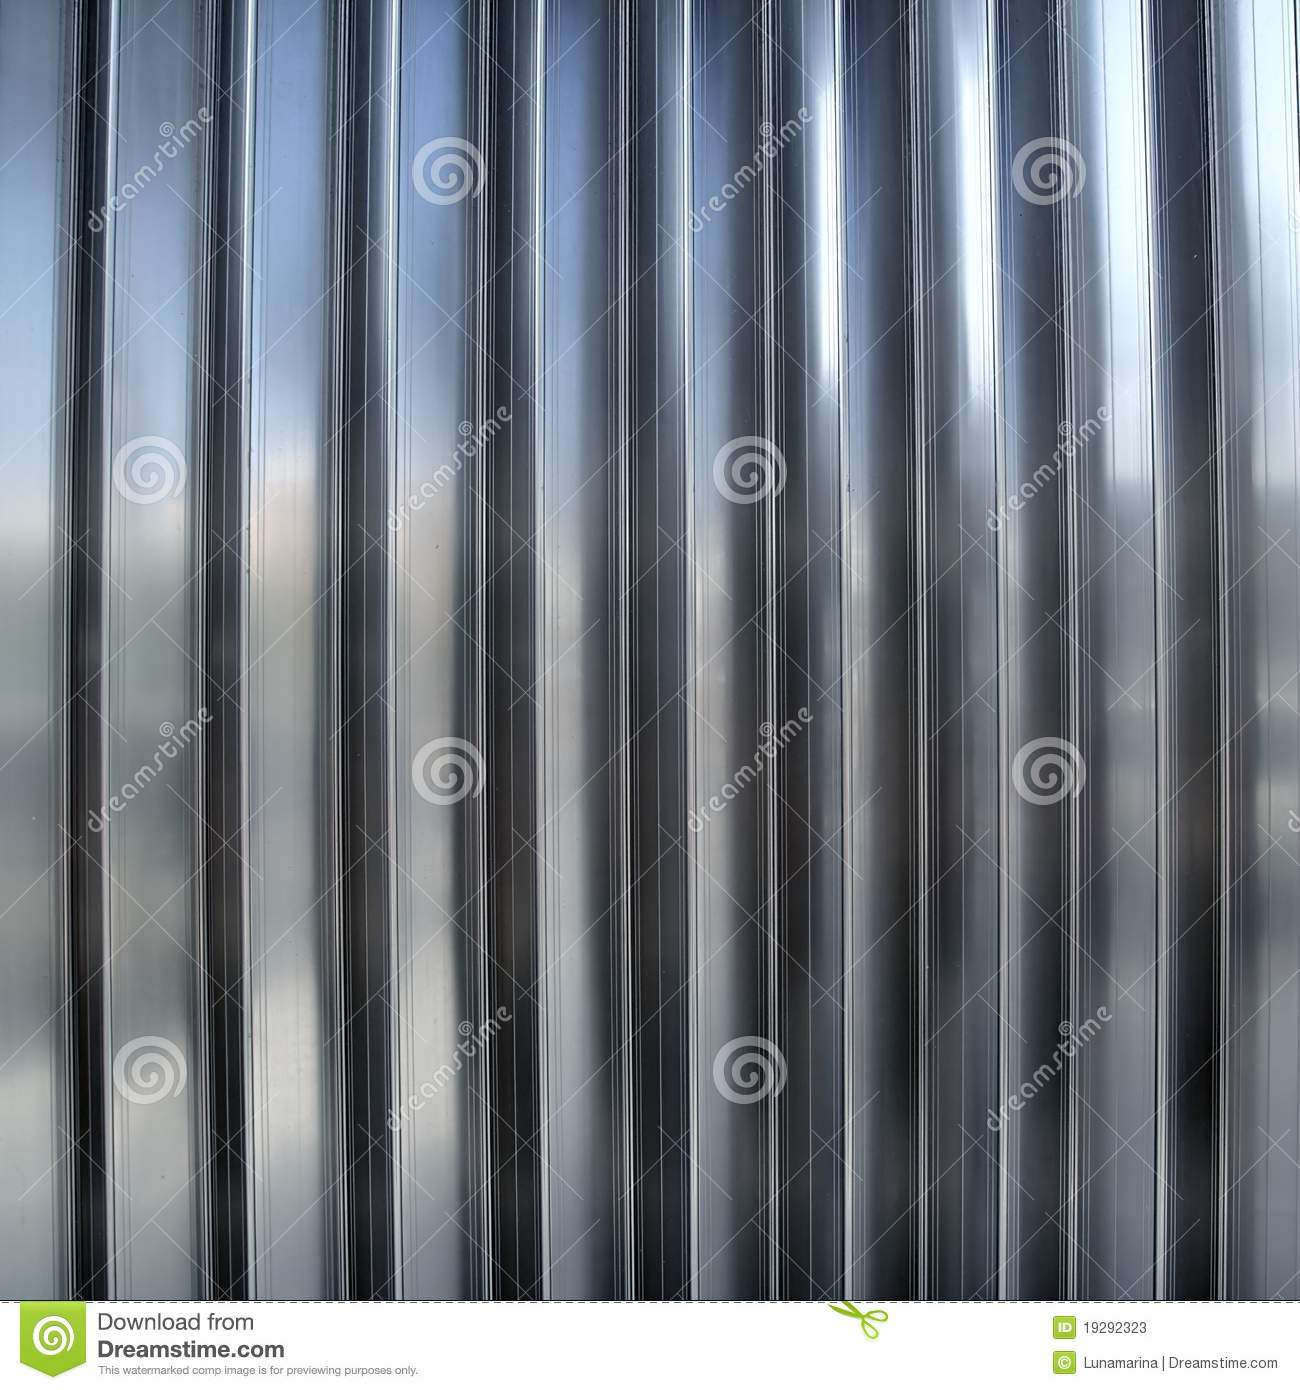 Stainless Steel Silver Metal Stripes Texture Rows Stock Photos ...